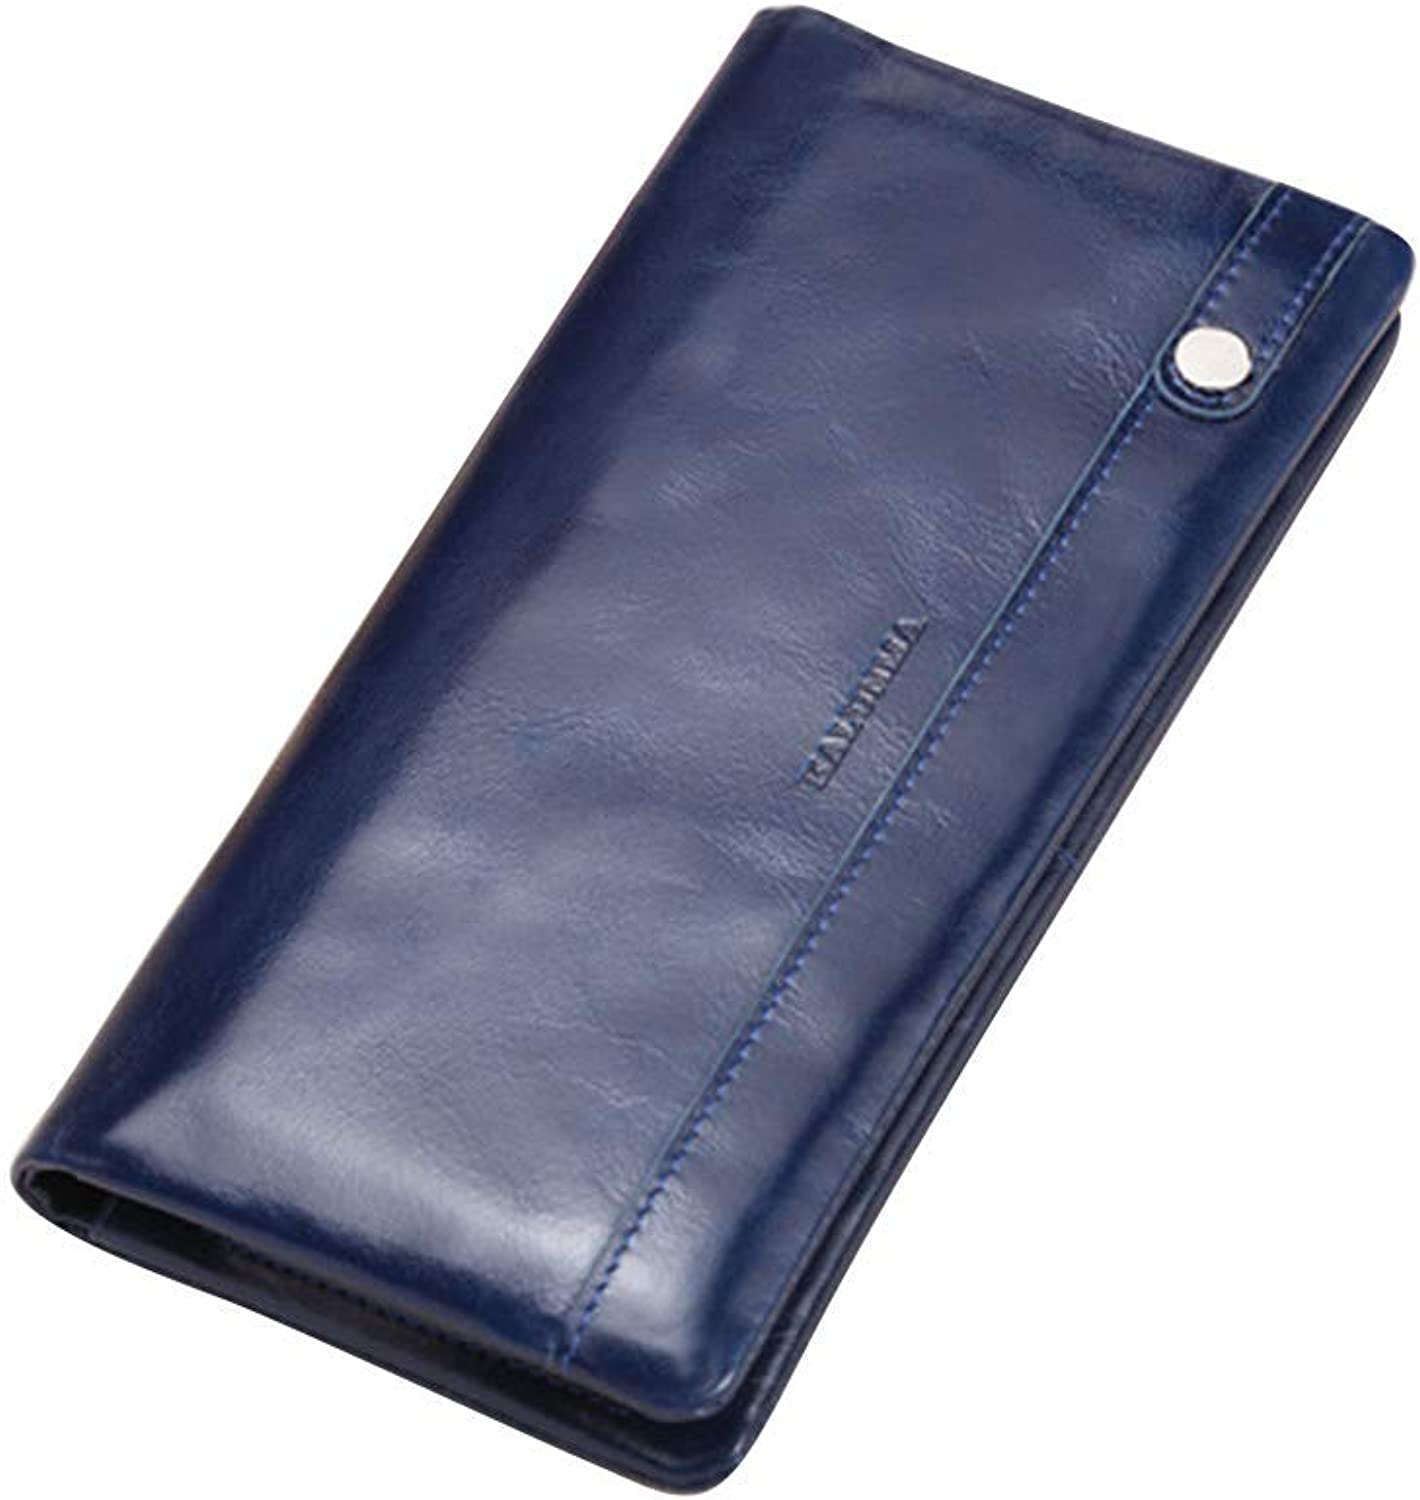 Ladies Handbag Women's Long Wallet Two Fold Wallet Popular Leather (color   blueee)